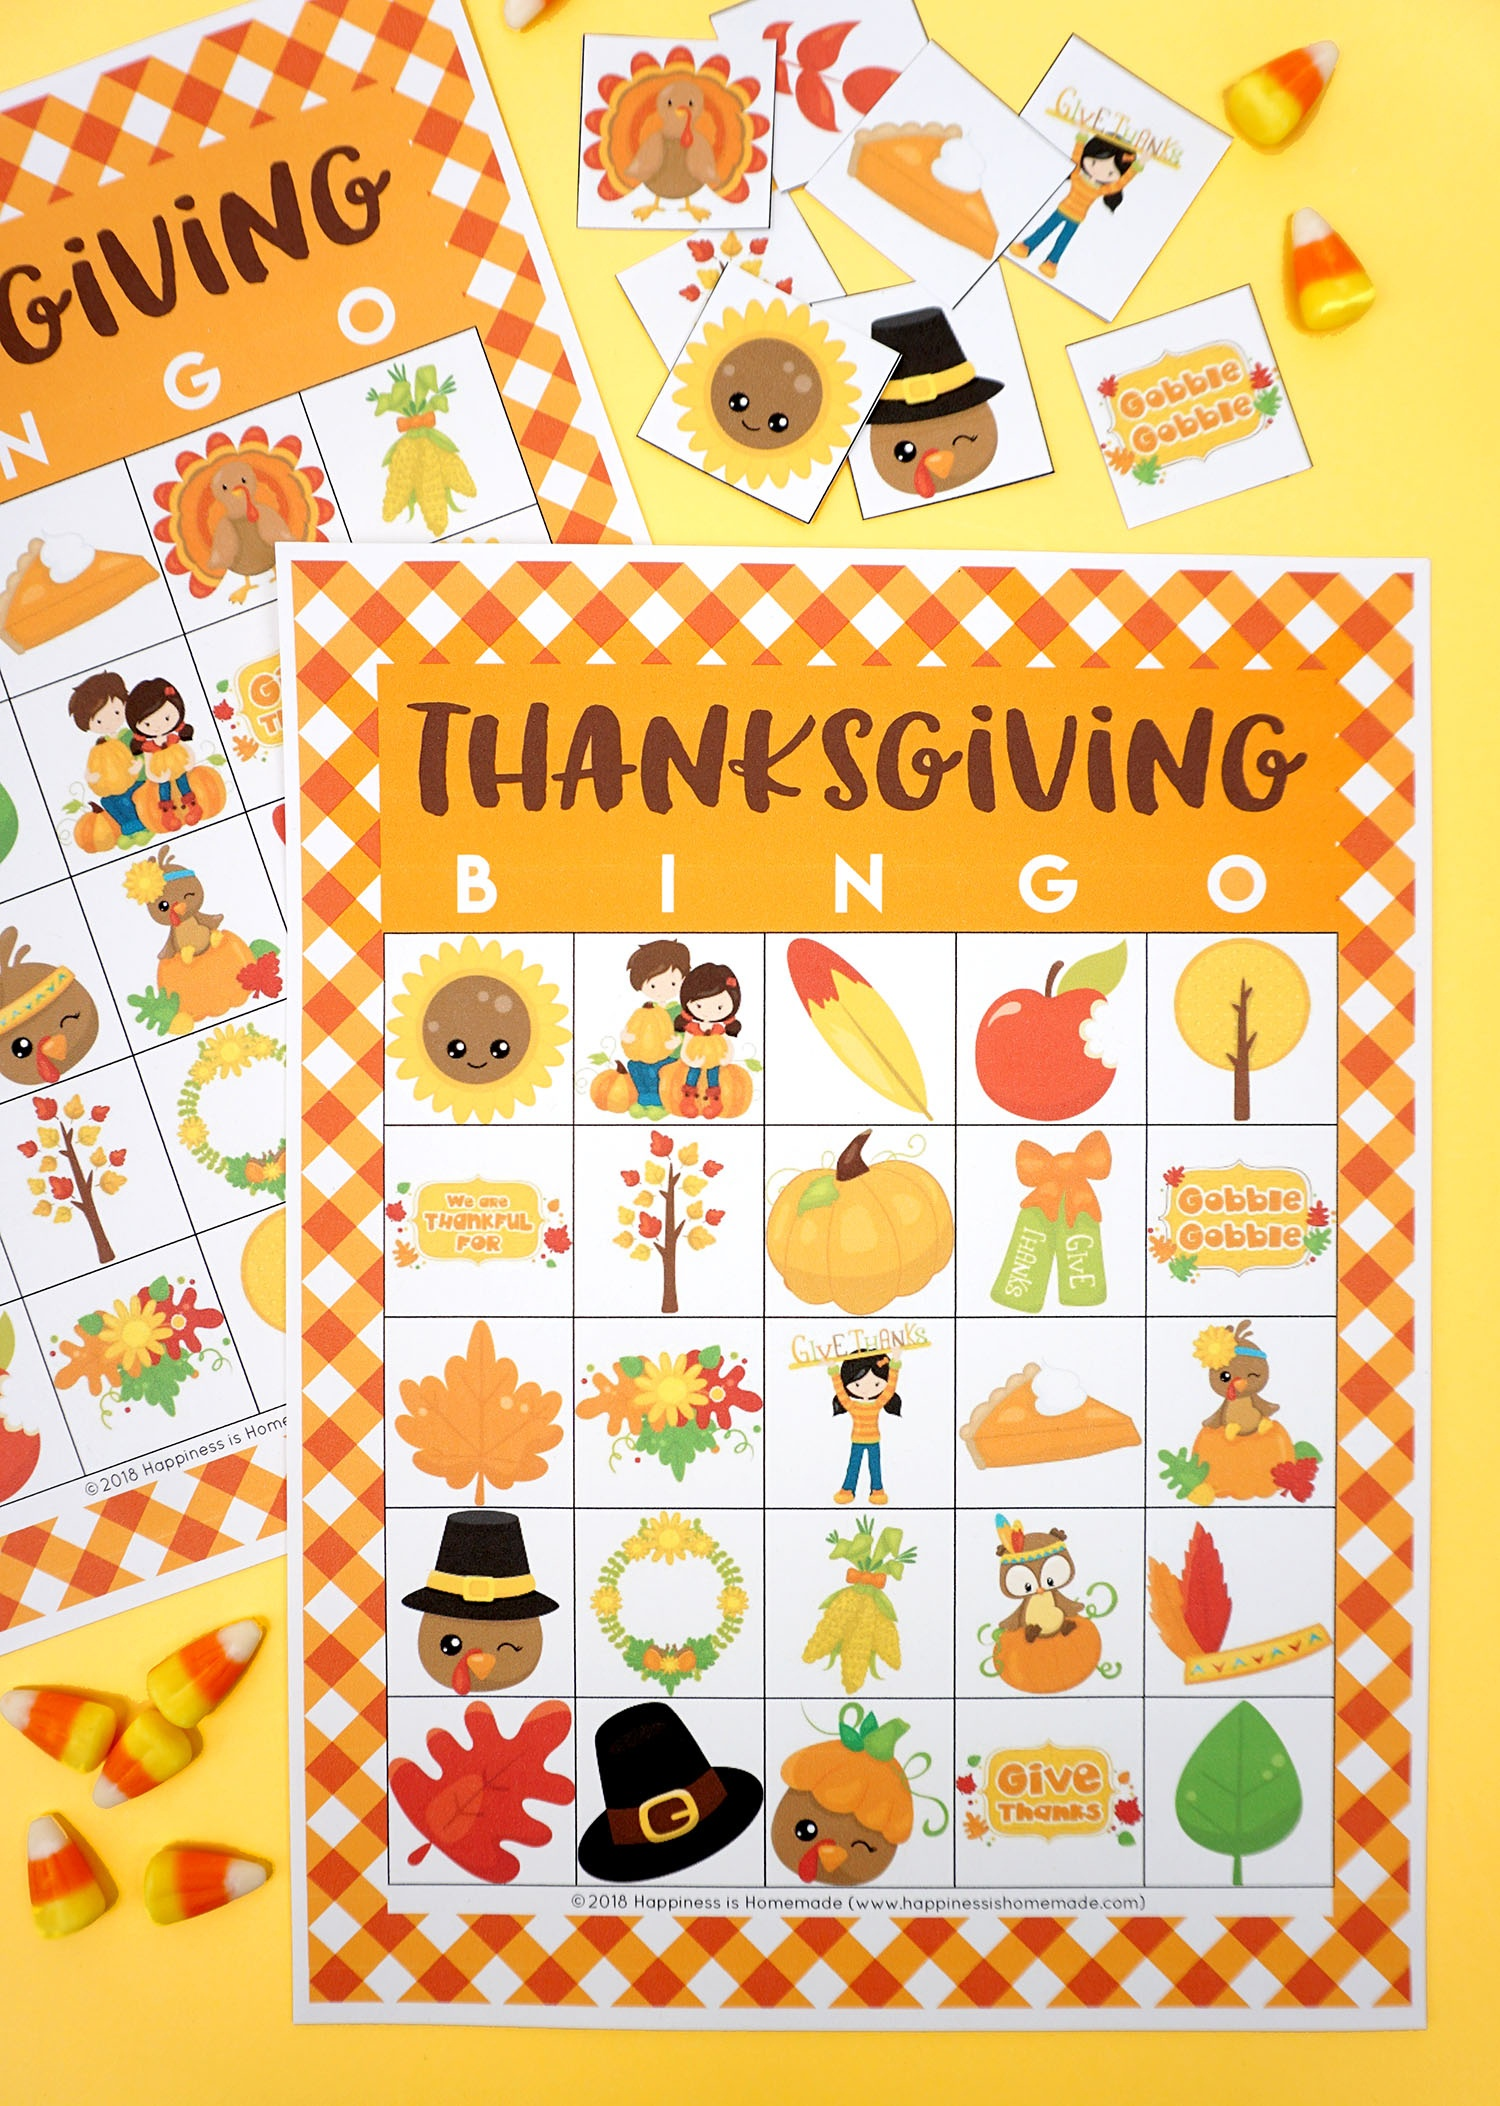 Free Printable Thanksgiving Bingo Cards - Happiness Is Homemade - Free Printable Thanksgiving Games For Adults